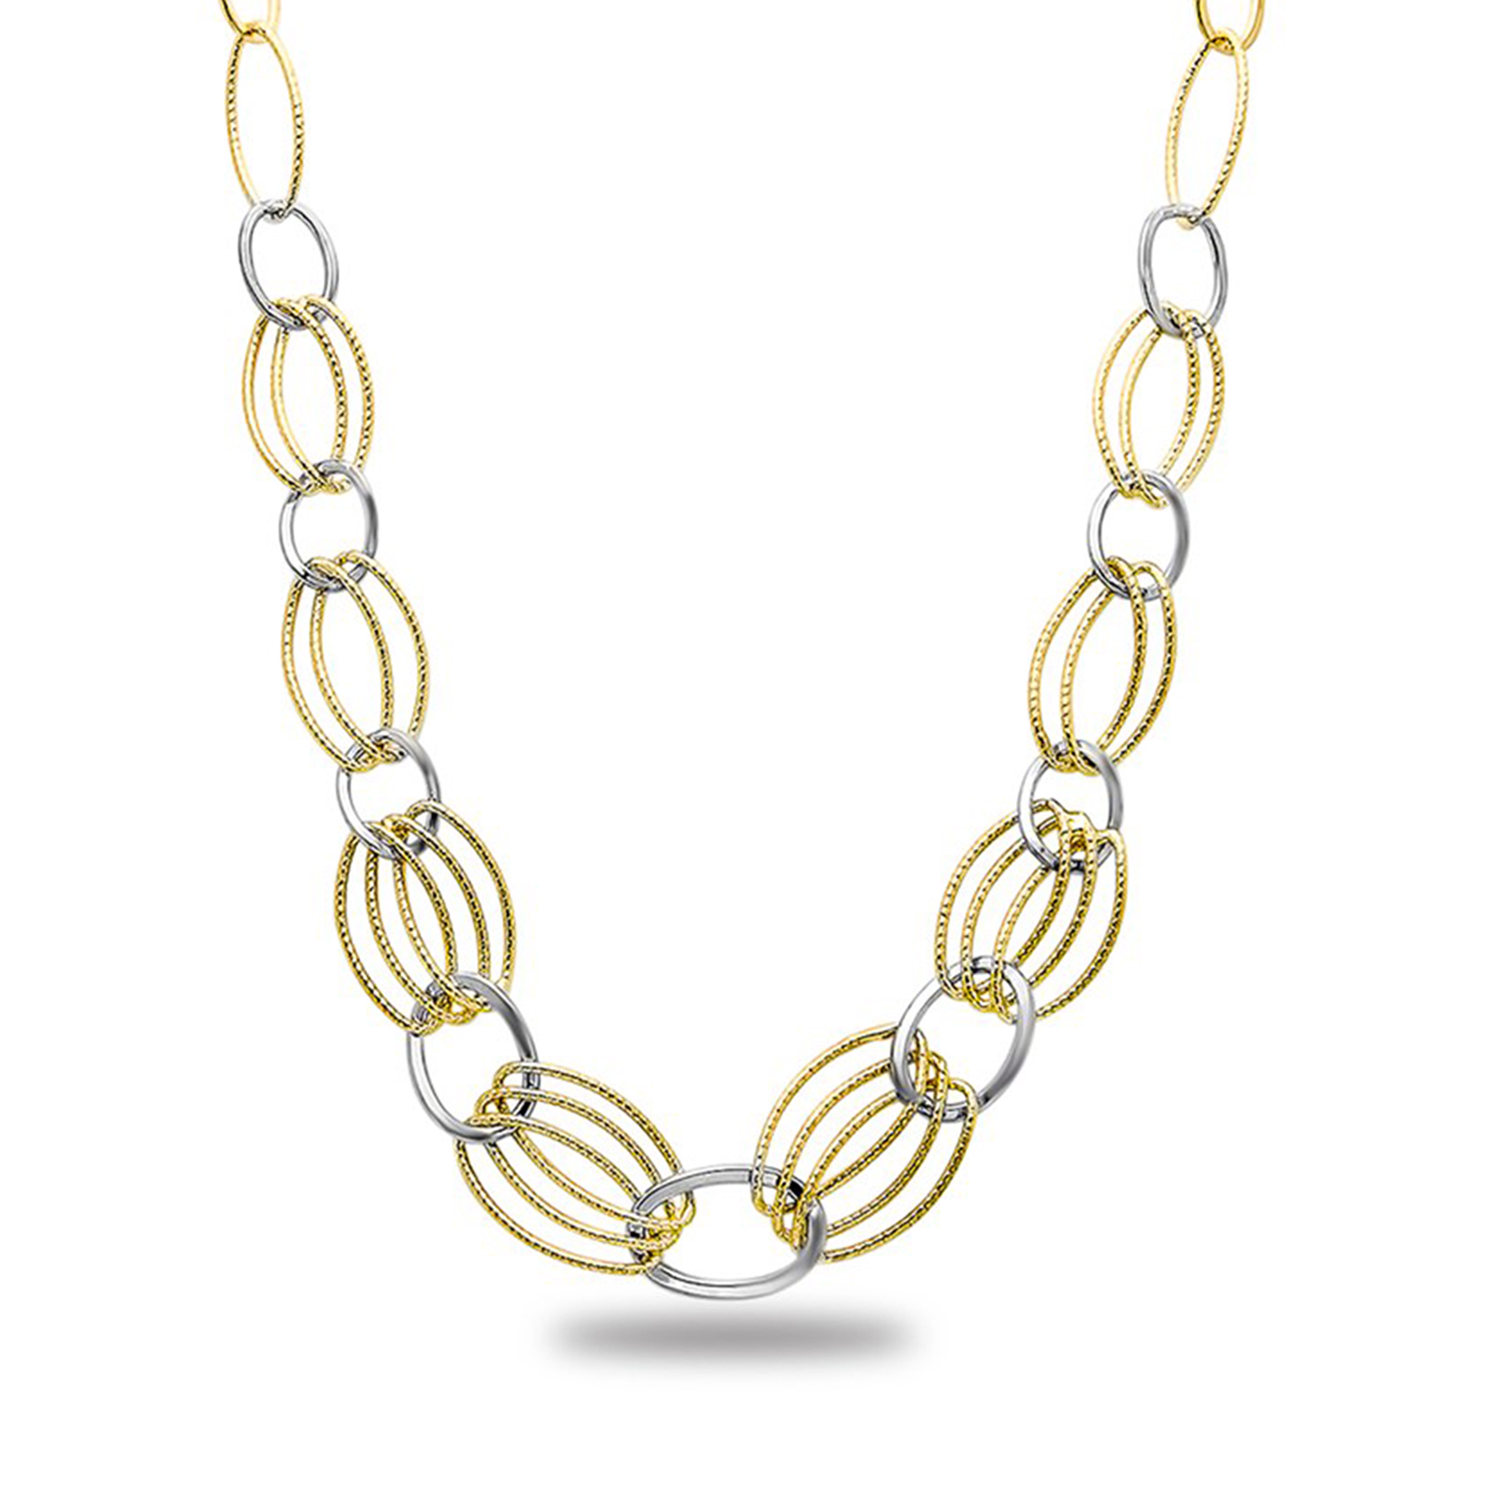 Sterling Silver & 18k Gold-Tone Plated Link Necklace